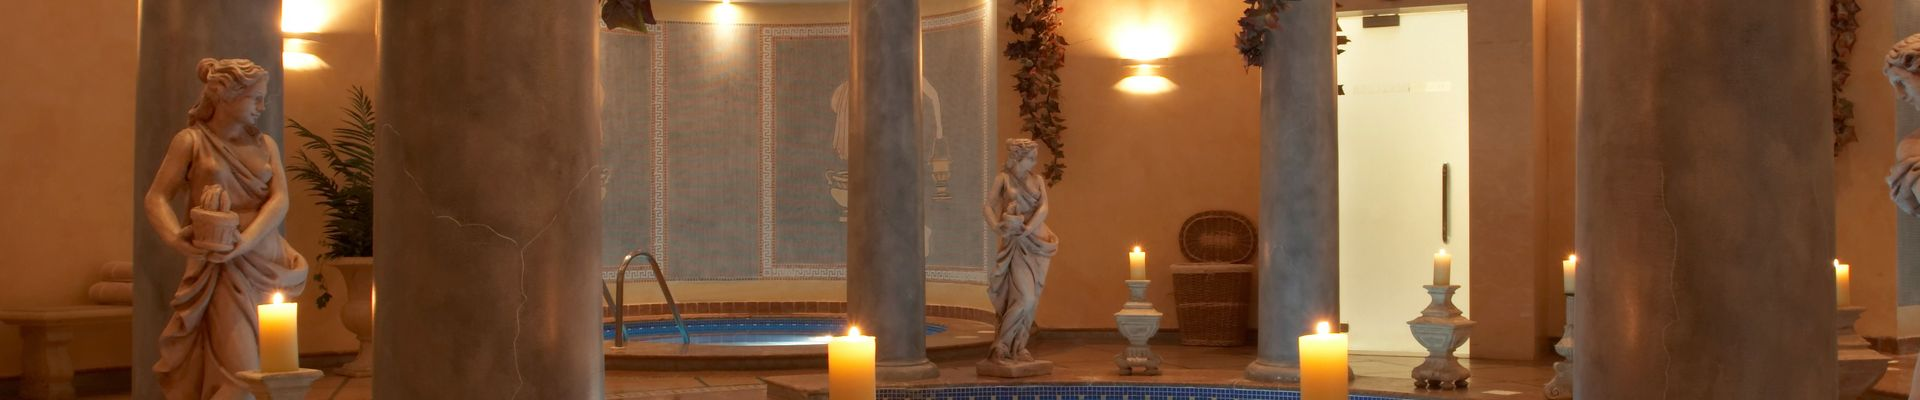 Wellnesshotels in Wiesbaden